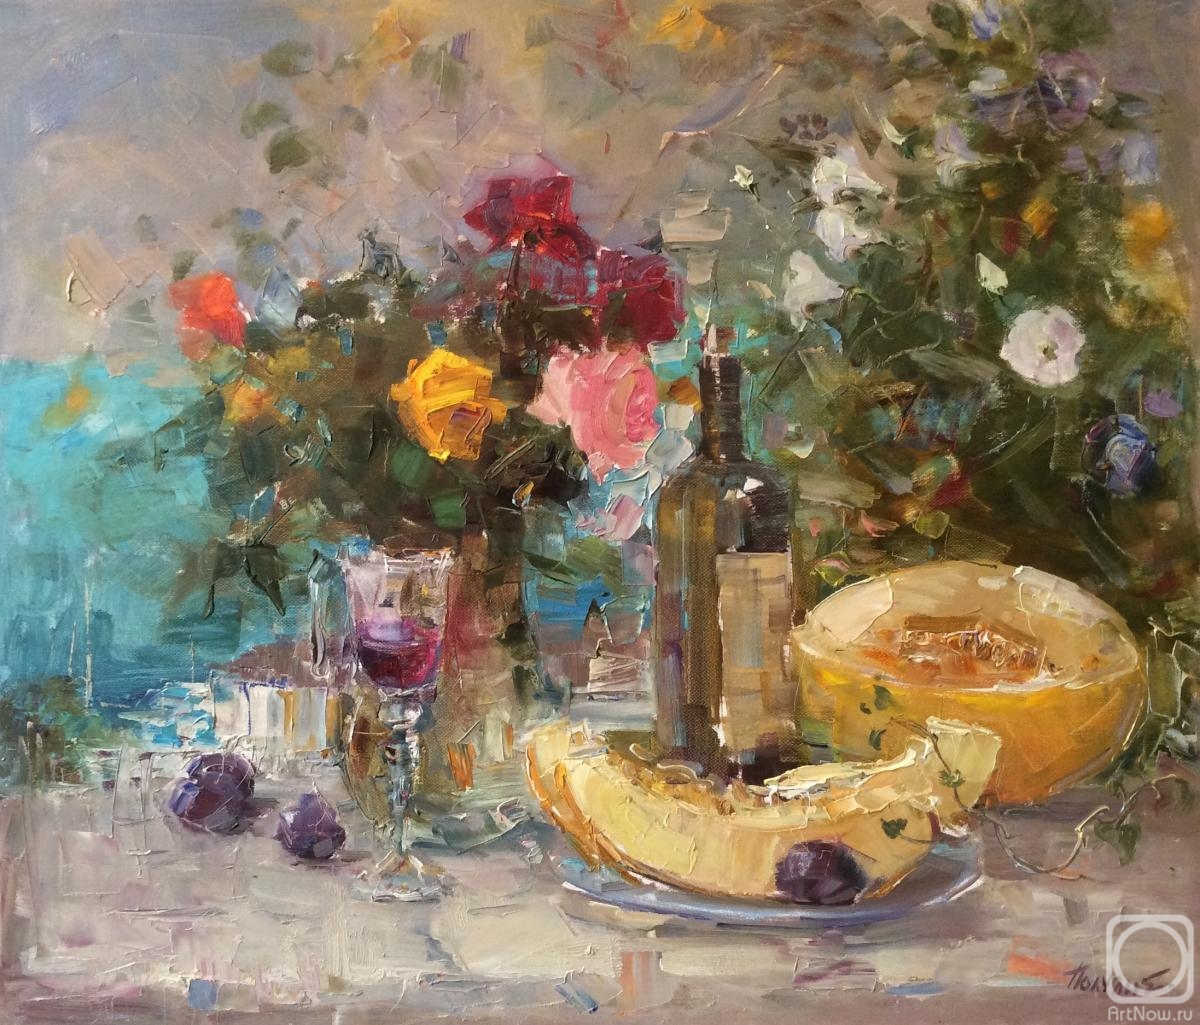 Poluyan Yelena. Crimean still life with melon